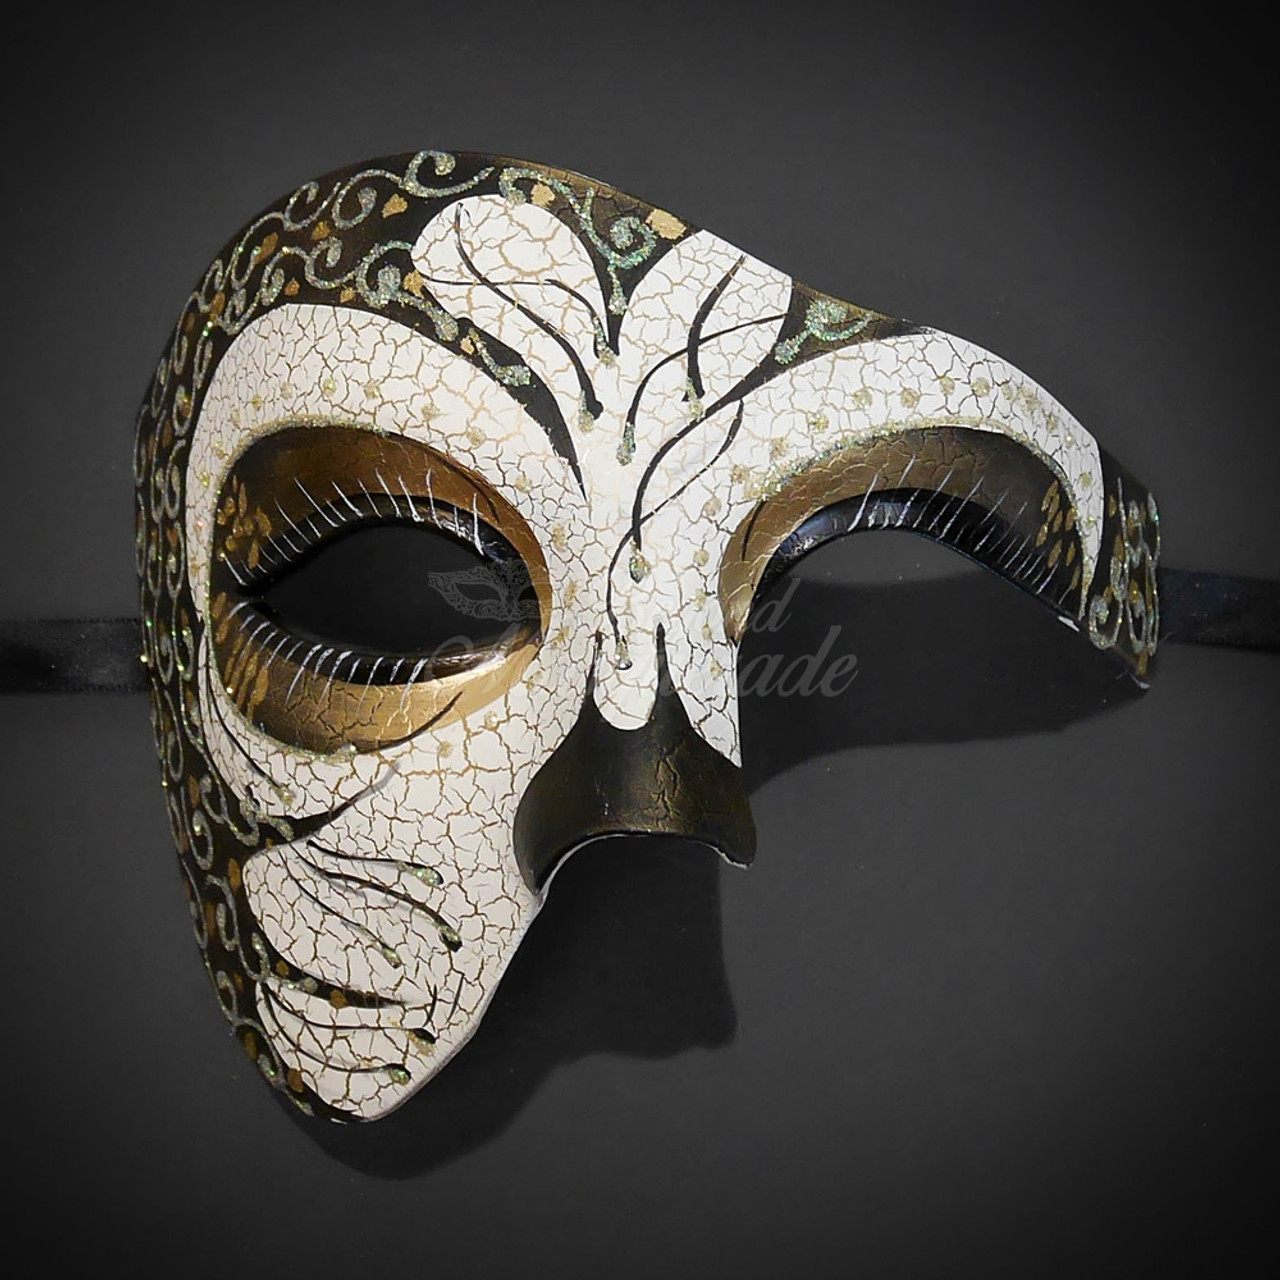 masquerade masks party masks halloween masks halloween costume masks couples masquerade masks